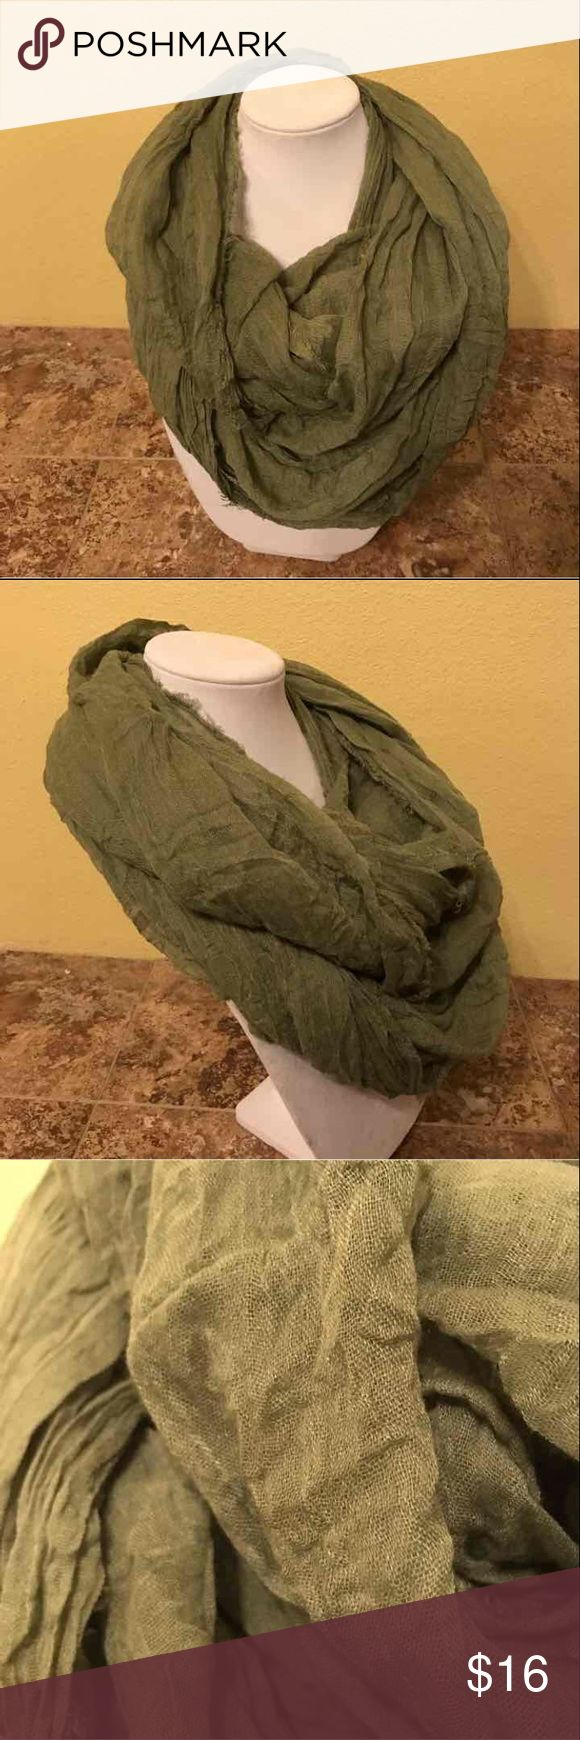 "Tasha ""the ringer"" Green infinity scarf. Purchased from Nordstrom, great condition, worn once. Regular $32. Tasha ""the ringer"" Green infinity scarf. Great add on item for a bundle! Tasha Accessories Scarves & Wraps"